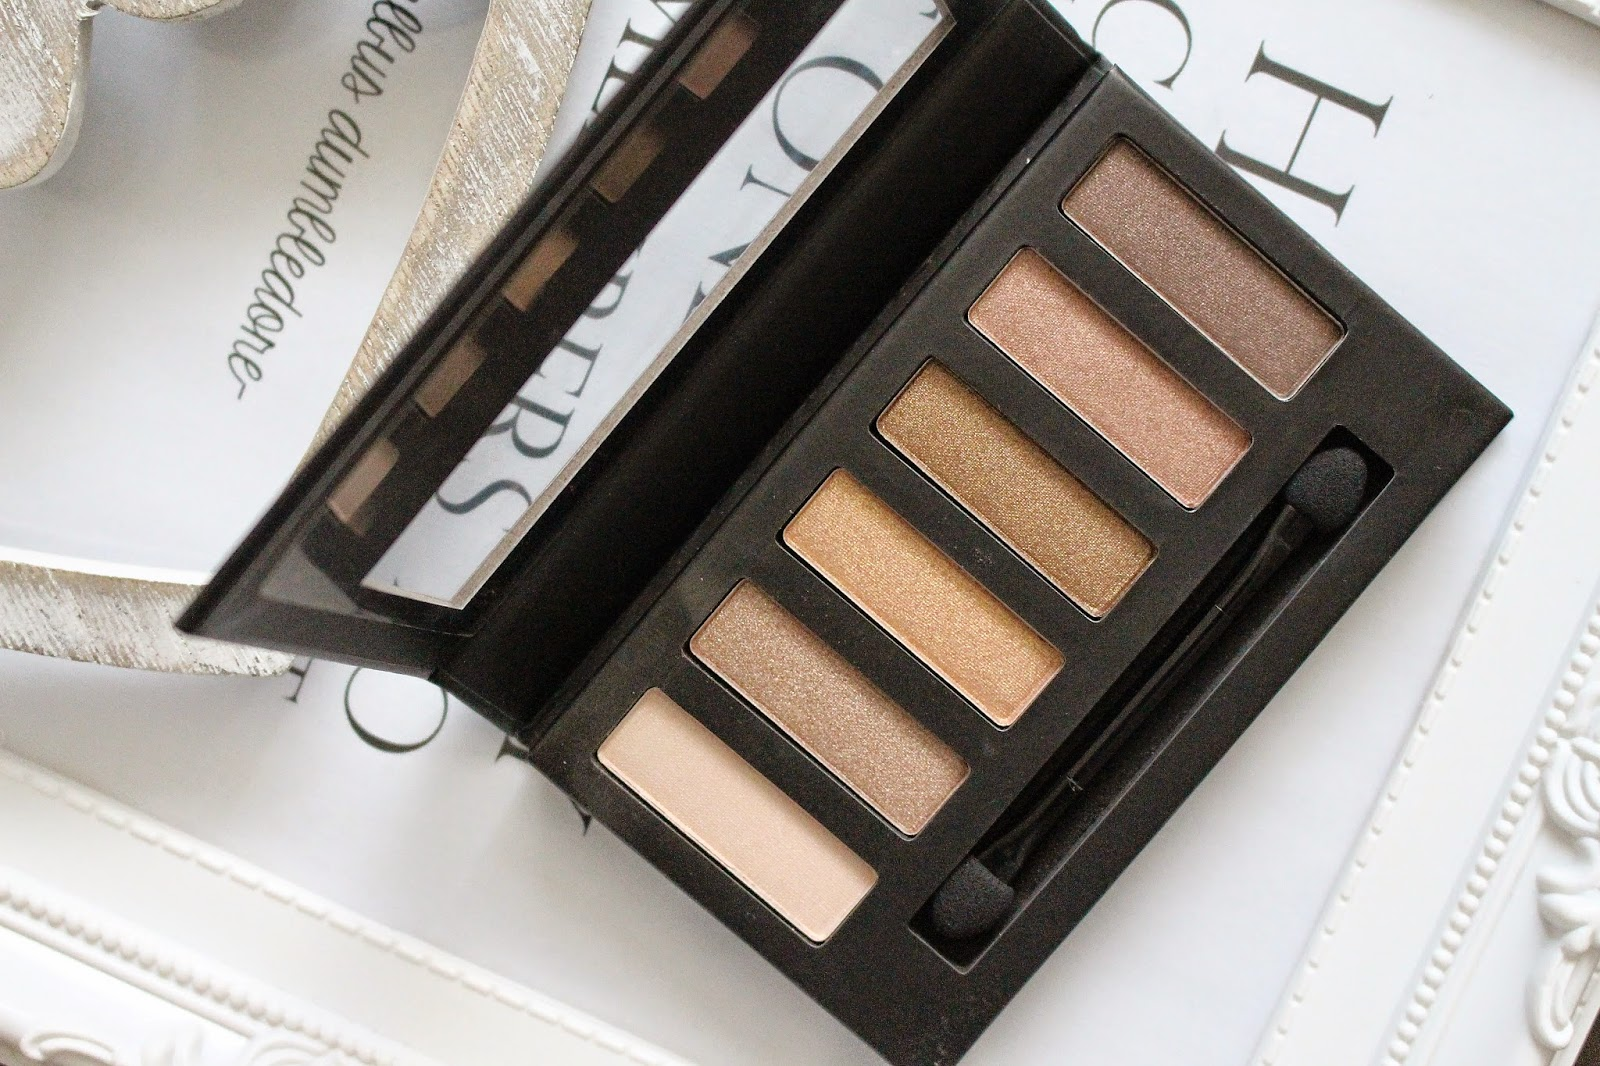 Collection Eye Uncovered Pallette in Nude Bronze